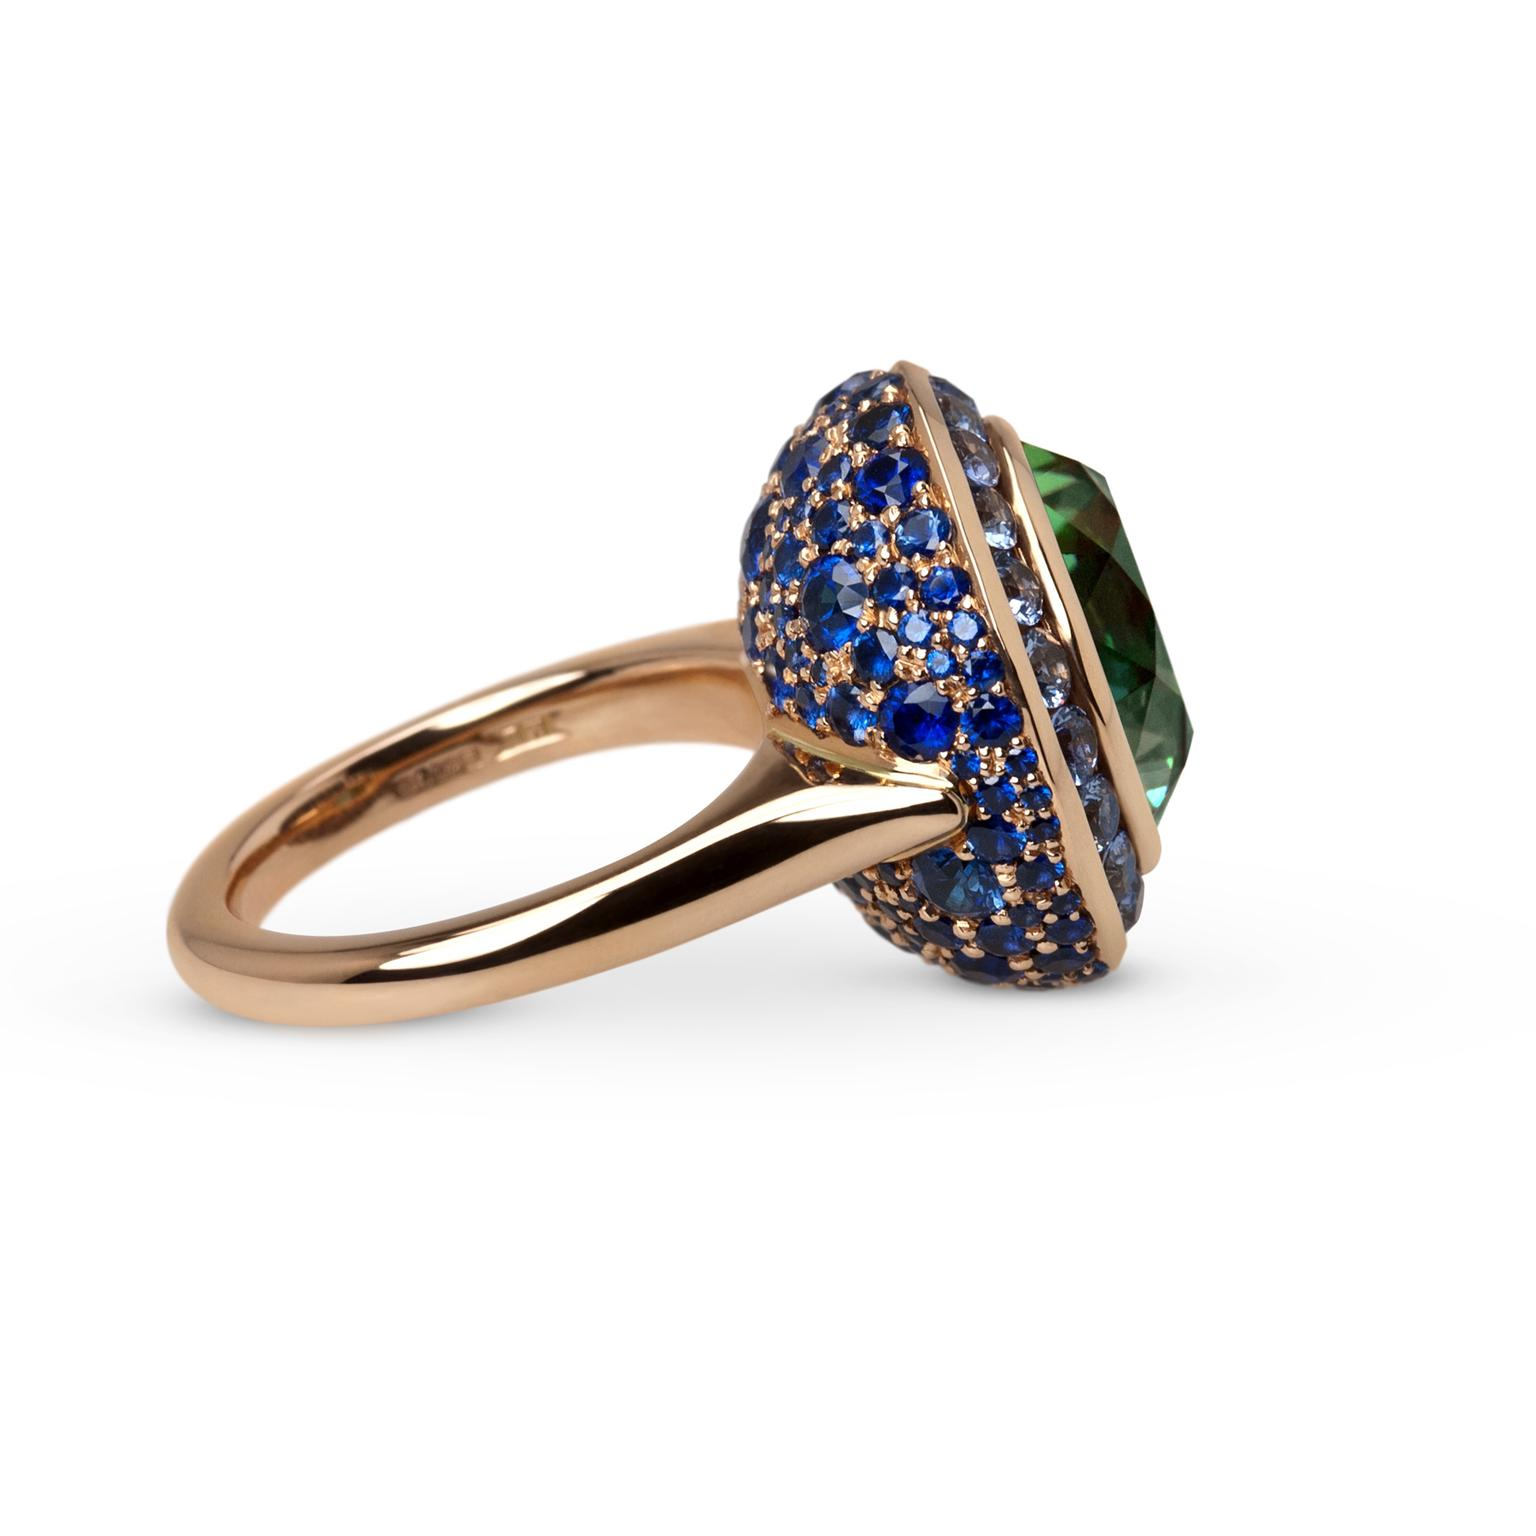 Ming Lampson Flowerbud tourmaline ring